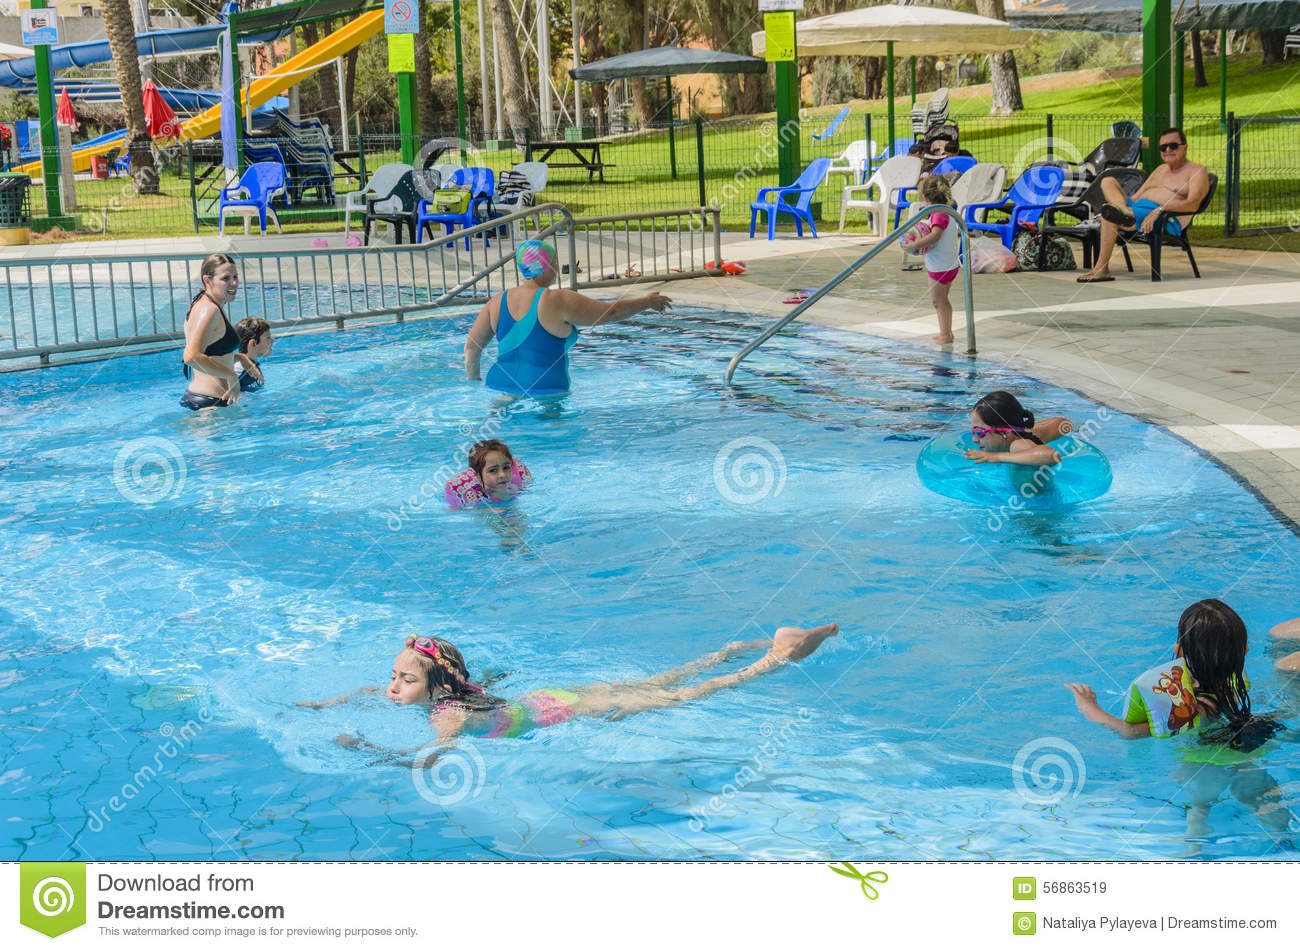 Omer israel june 27 people swim in the outdoor pool for Swimming images